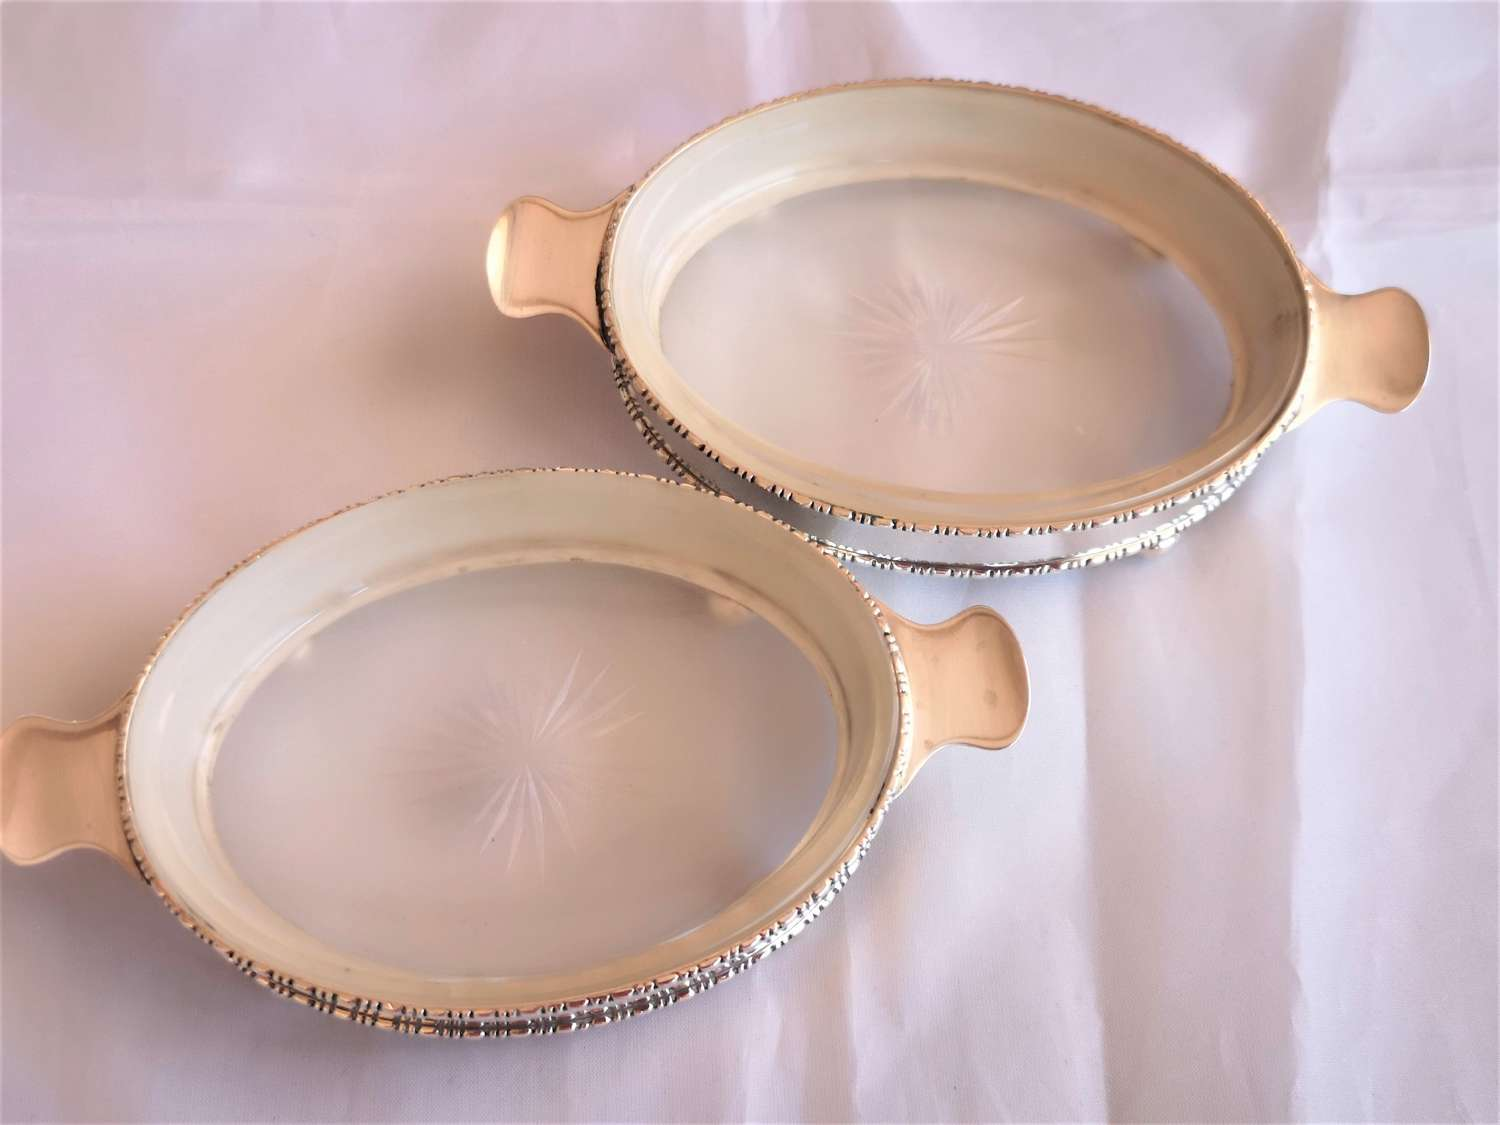 A pair of antique silver butter dishes